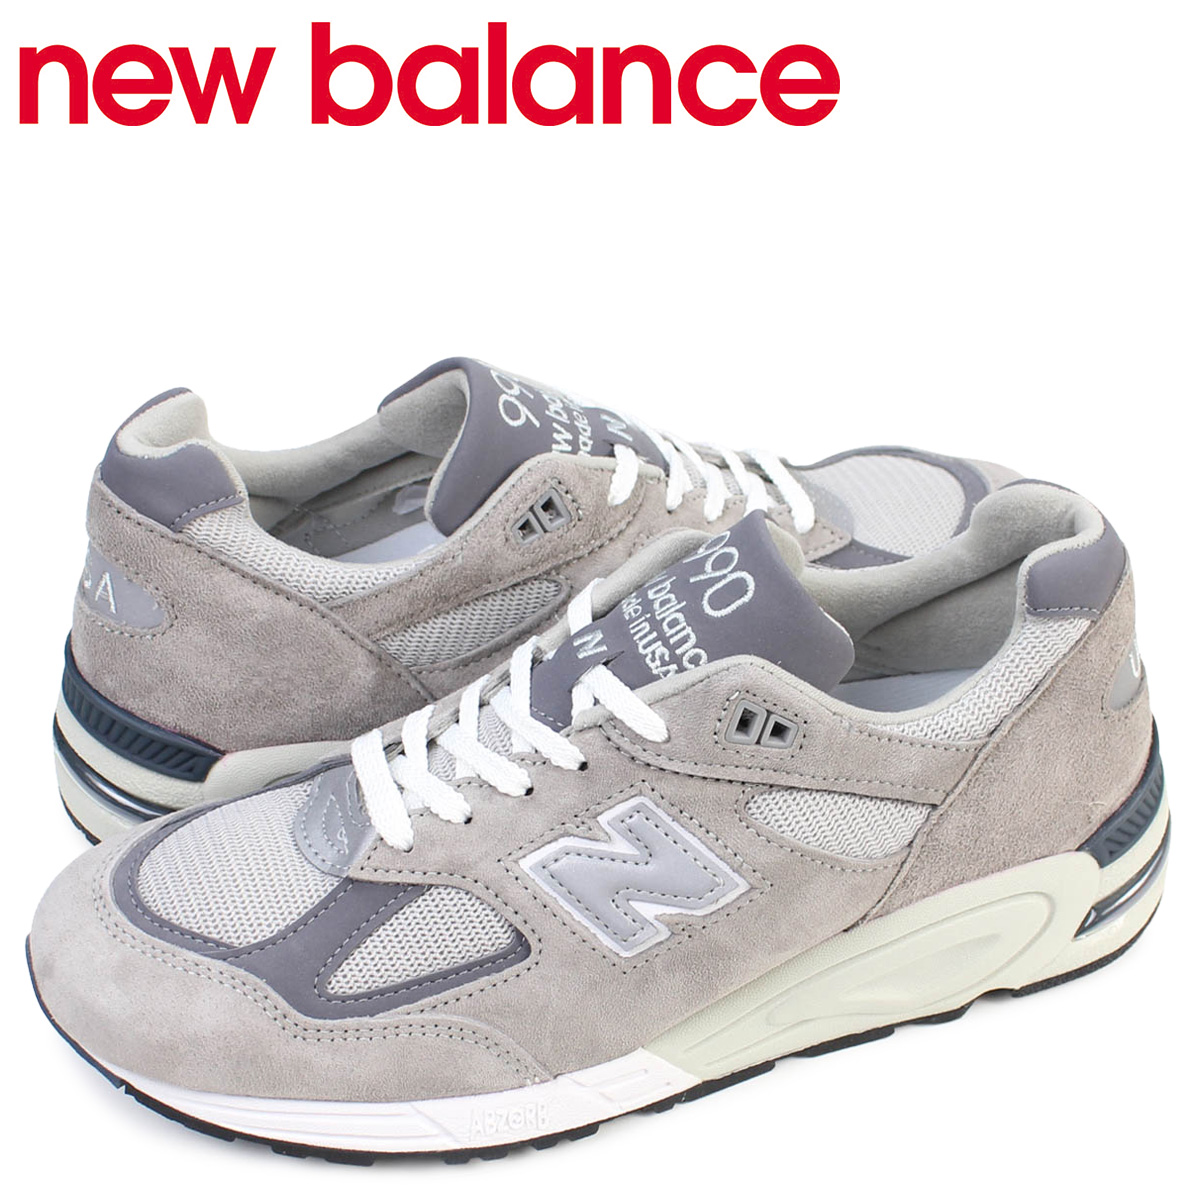 newest ede67 4f18a New Balance new balance 990 men's sneakers M990GR2 D Wise gray MADE IN USA